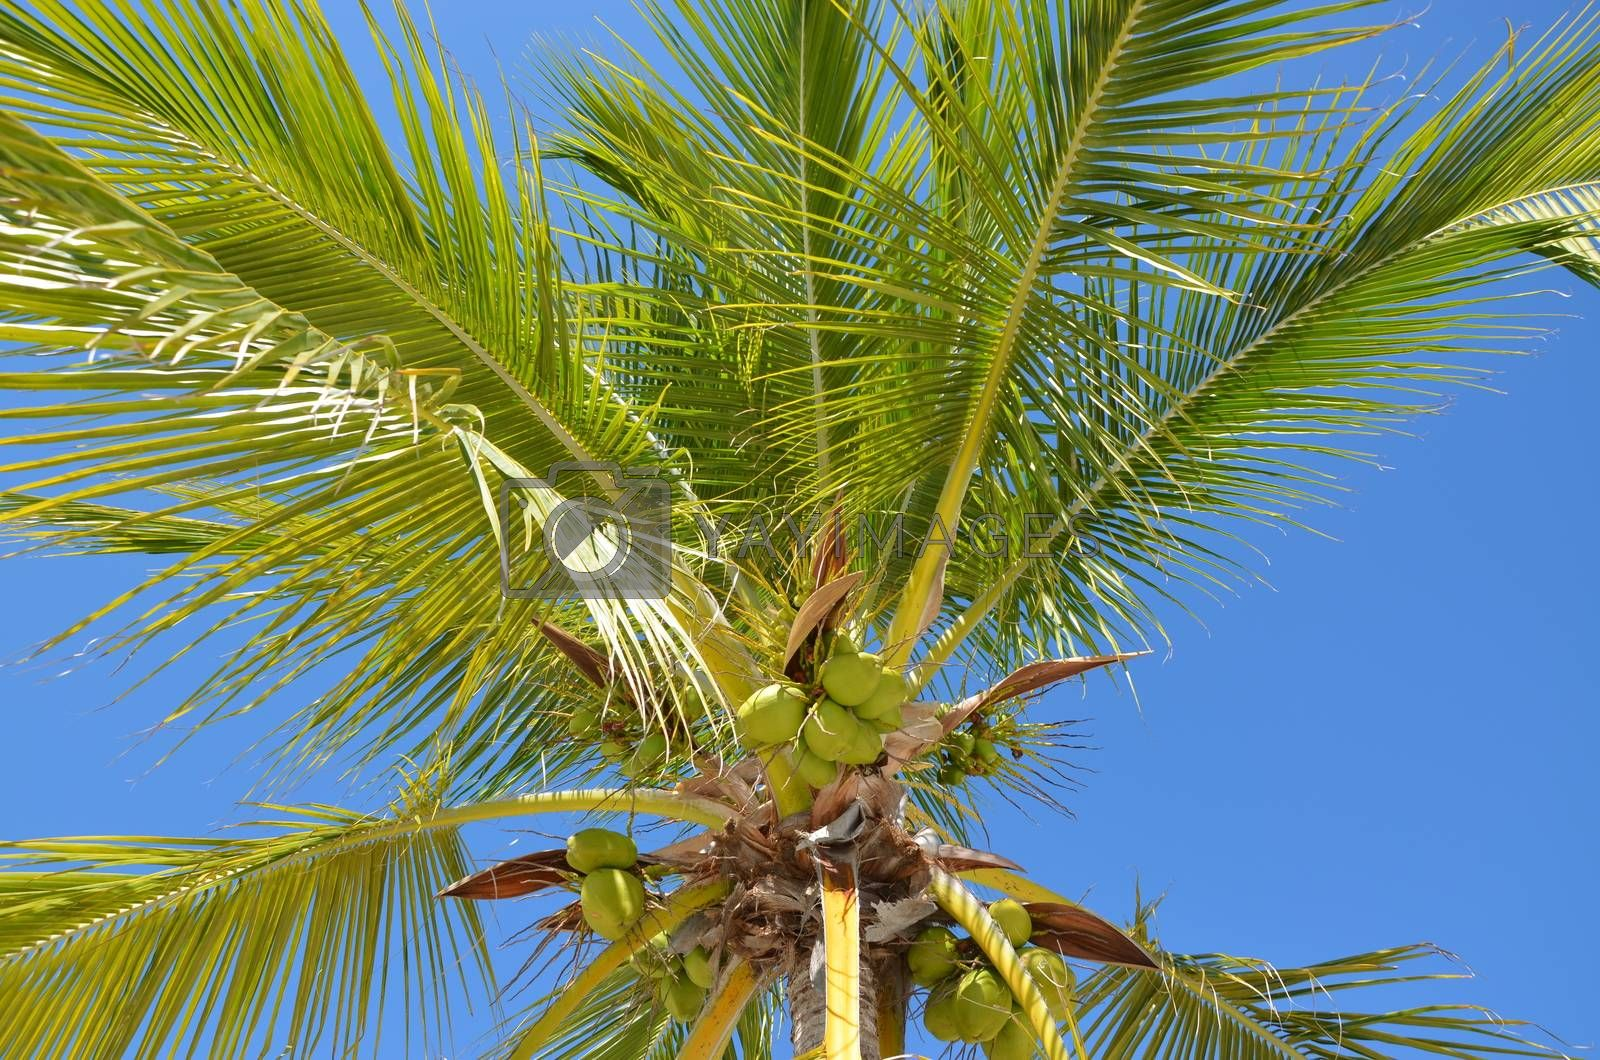 A view of a palm tree with coconuts hanging from the branches